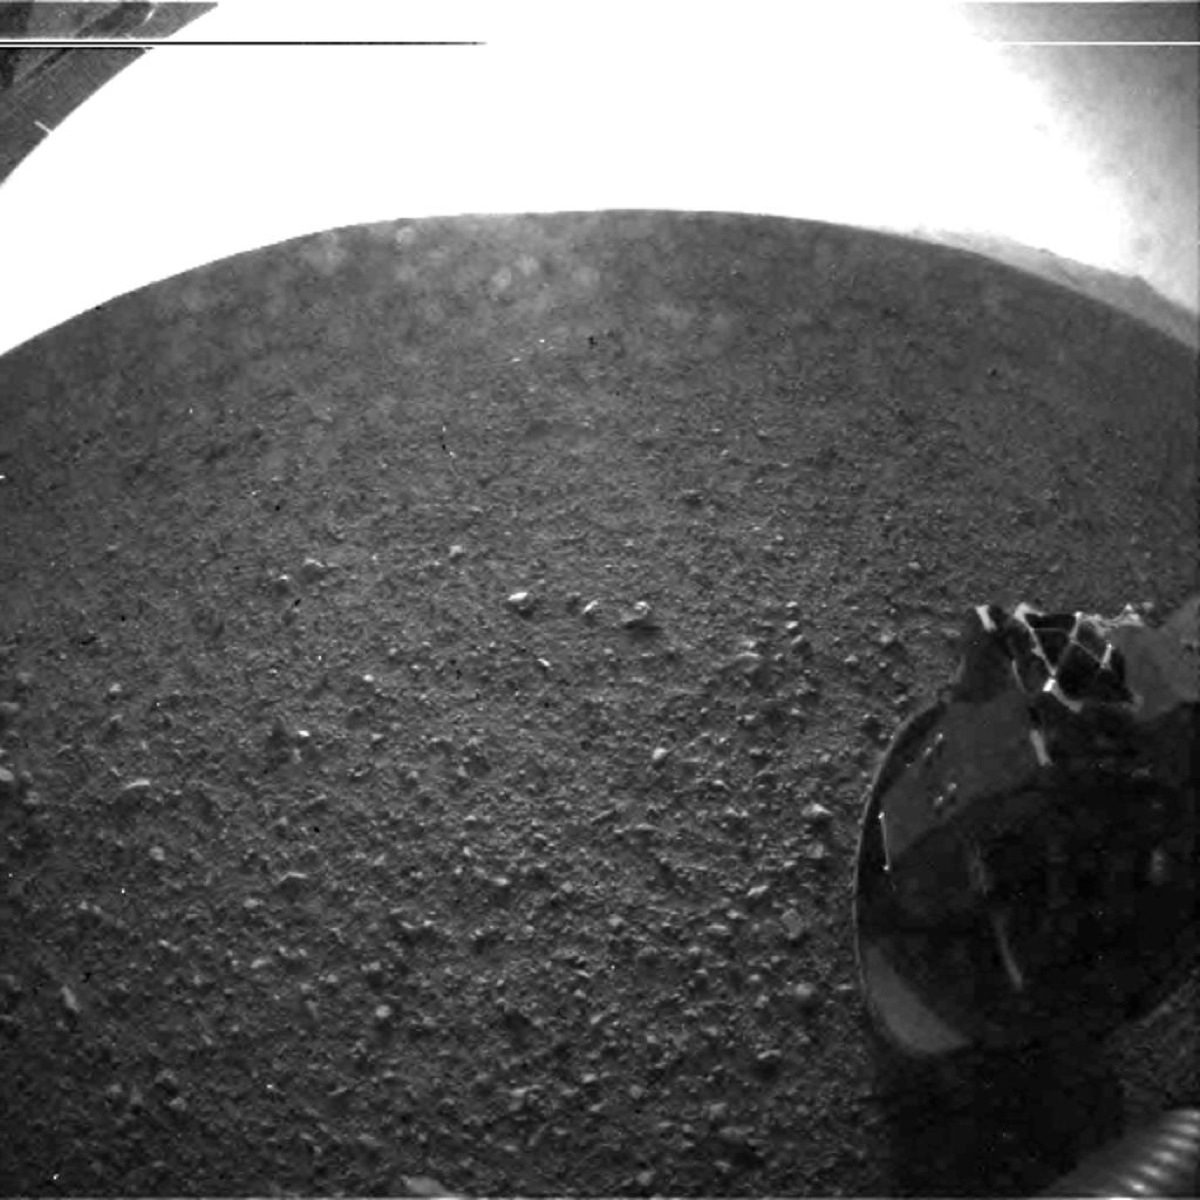 Msl5 Pia15973-Br2